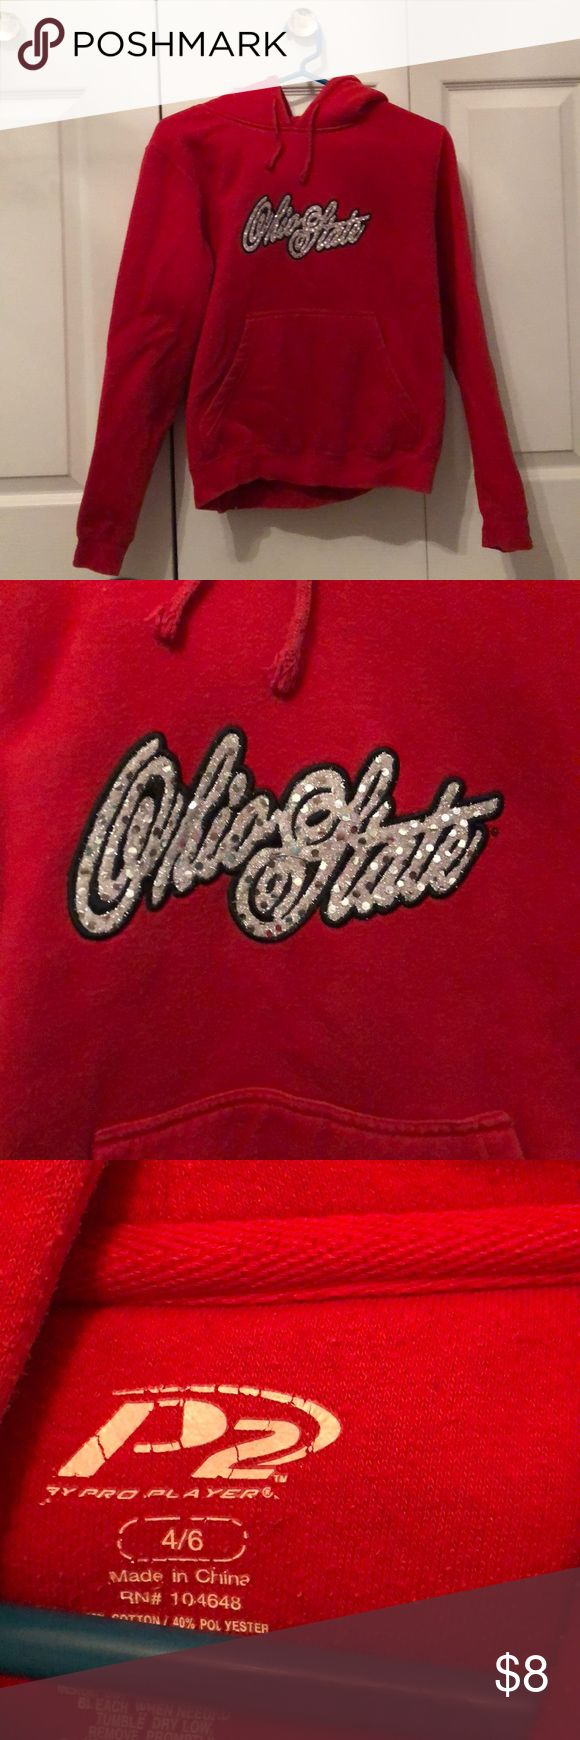 Ohio State Hoodie a hoodie that's perfect for any ohio state fan! in excellent condition! Pro Player Tops Sweatshirts & Hoodies